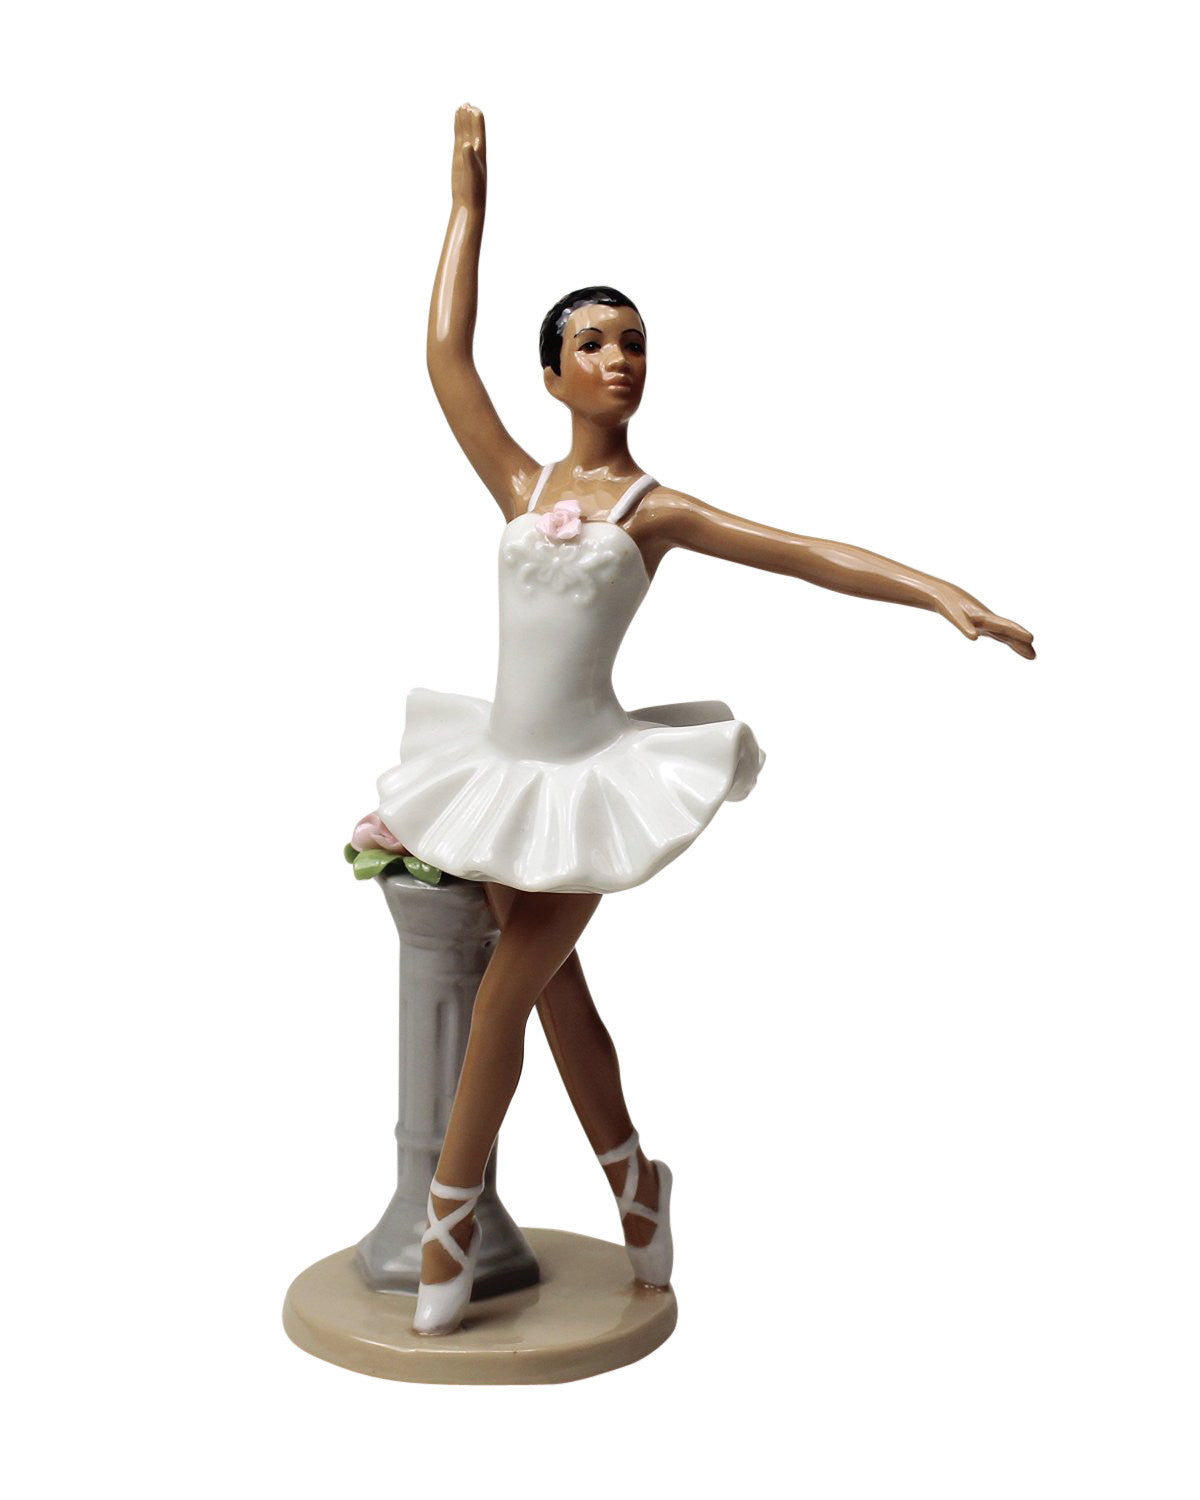 African American Ballerina in White Dress by Cosmos Gifts